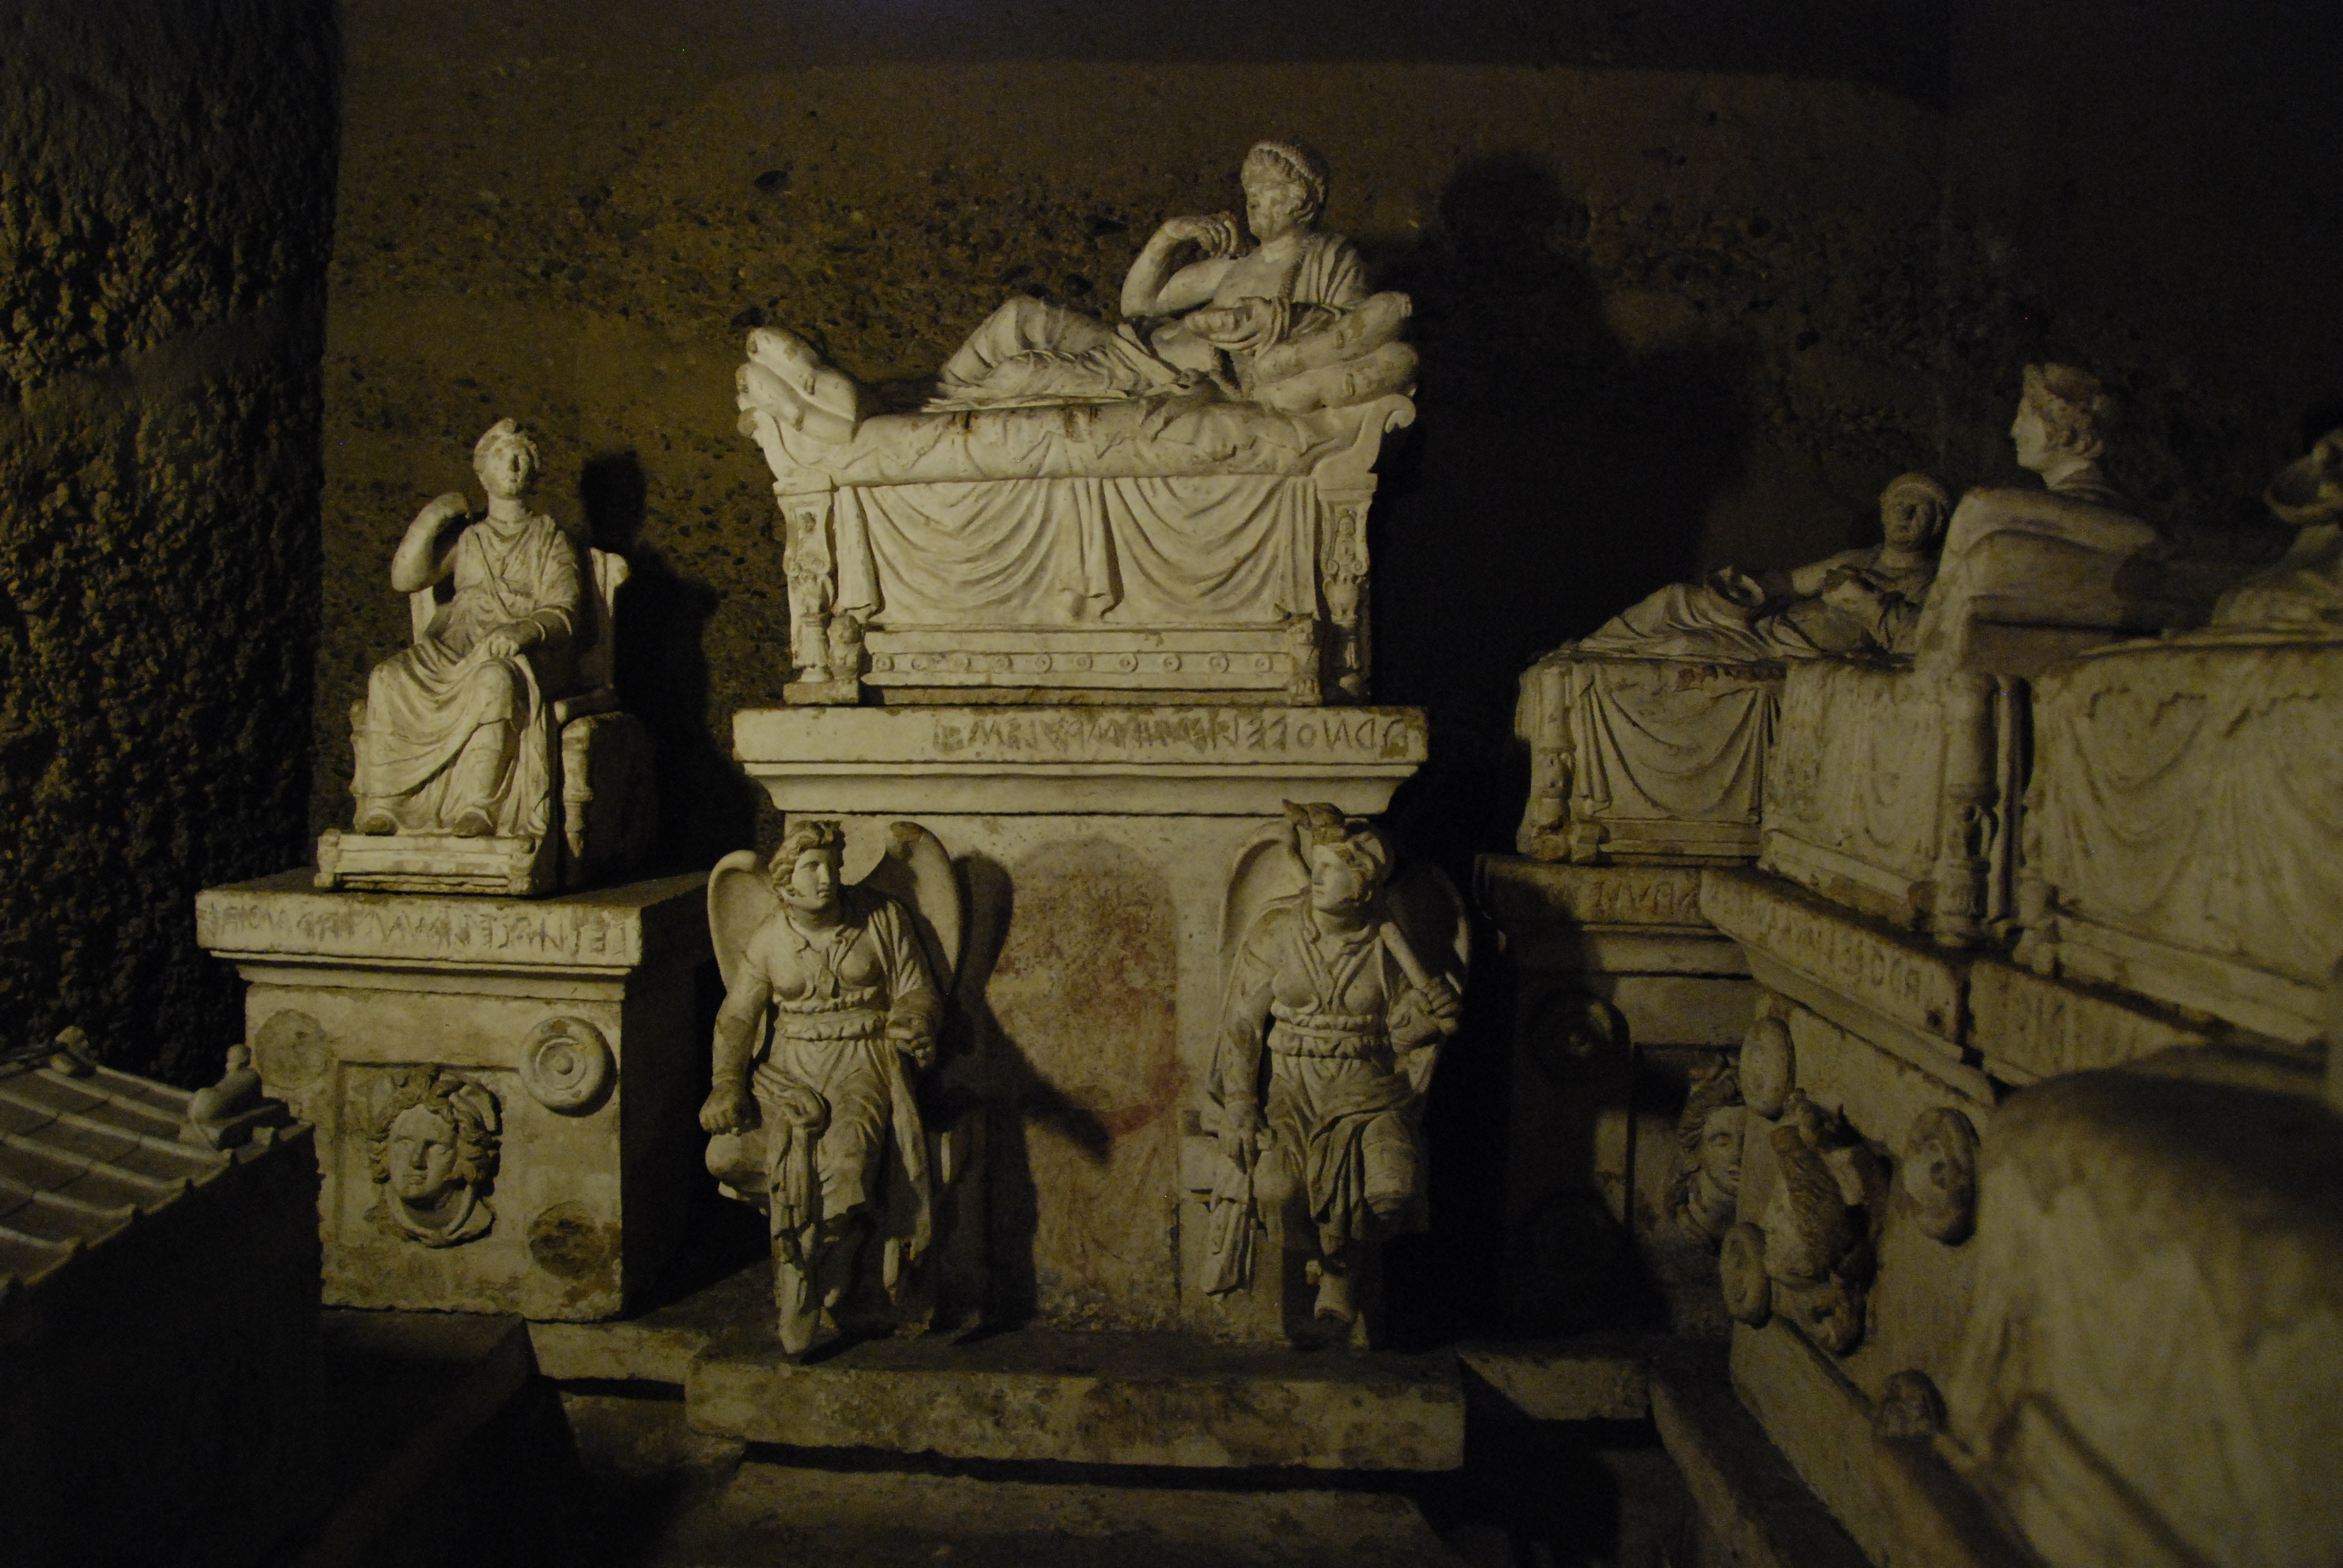 Hypgoeum in Malta, underground burial sites, UNESCO sites